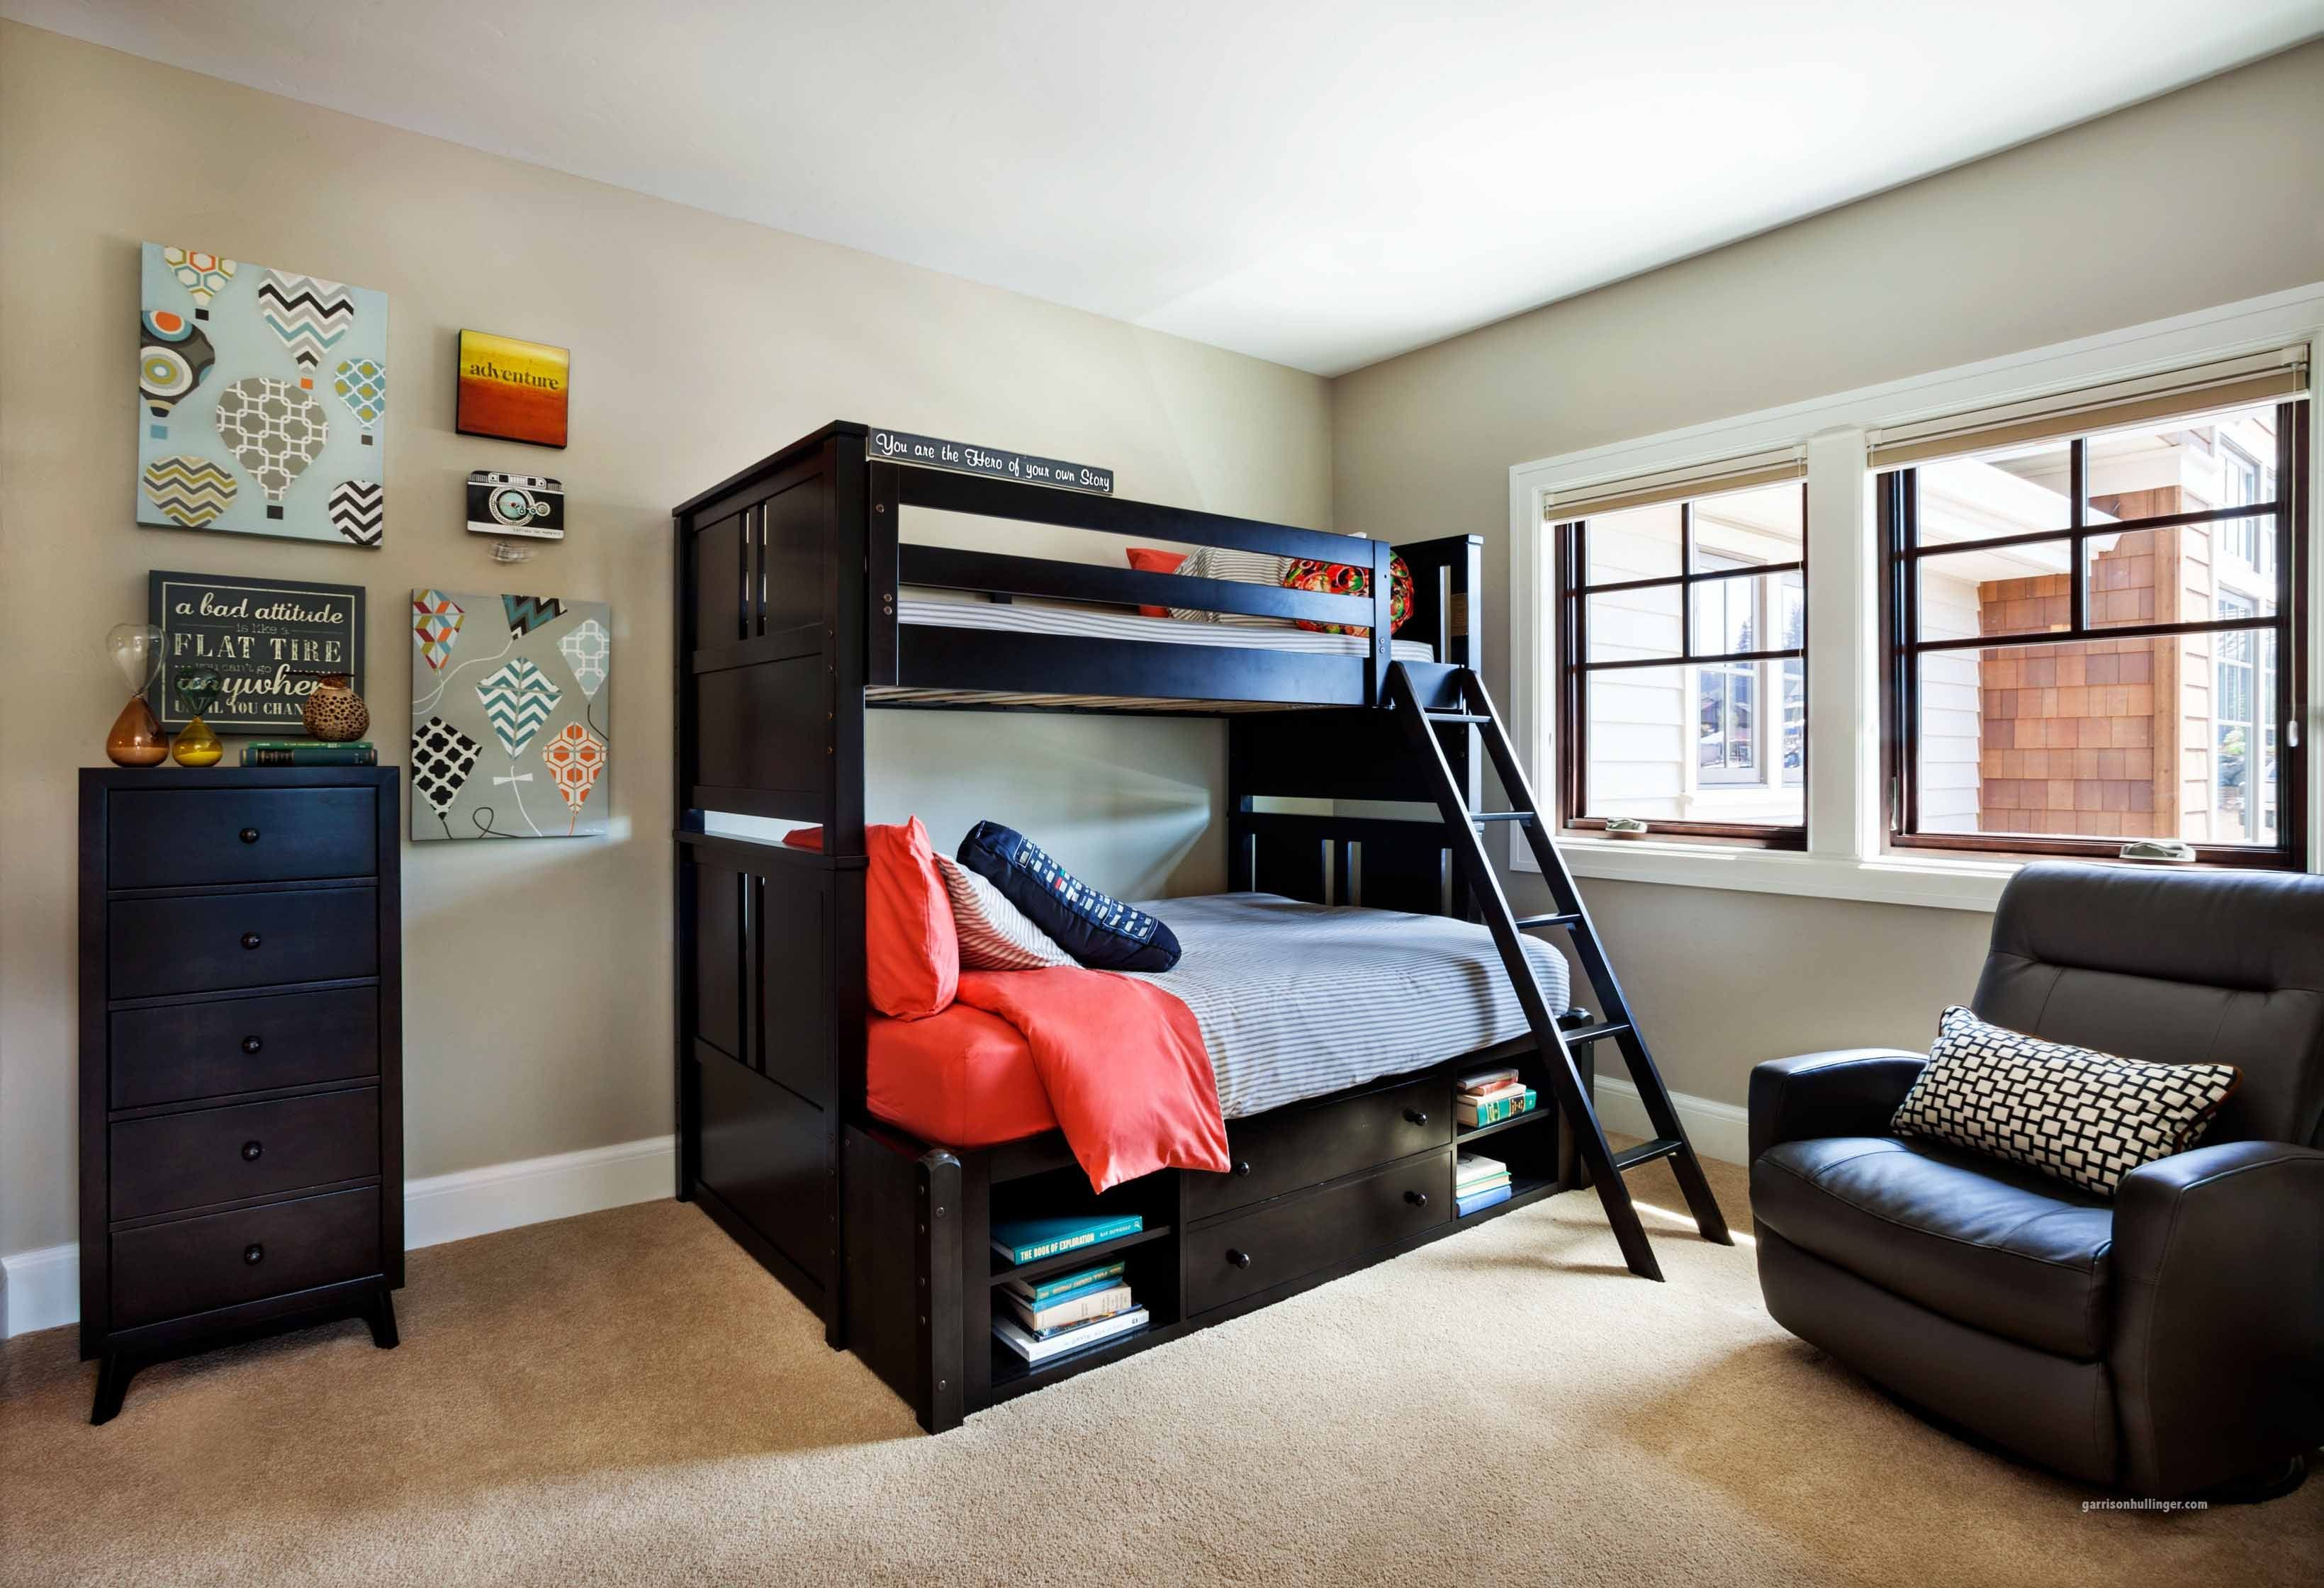 Small Apartment Living Room Ideas With Kids bunk bed decorating ideas - interior design